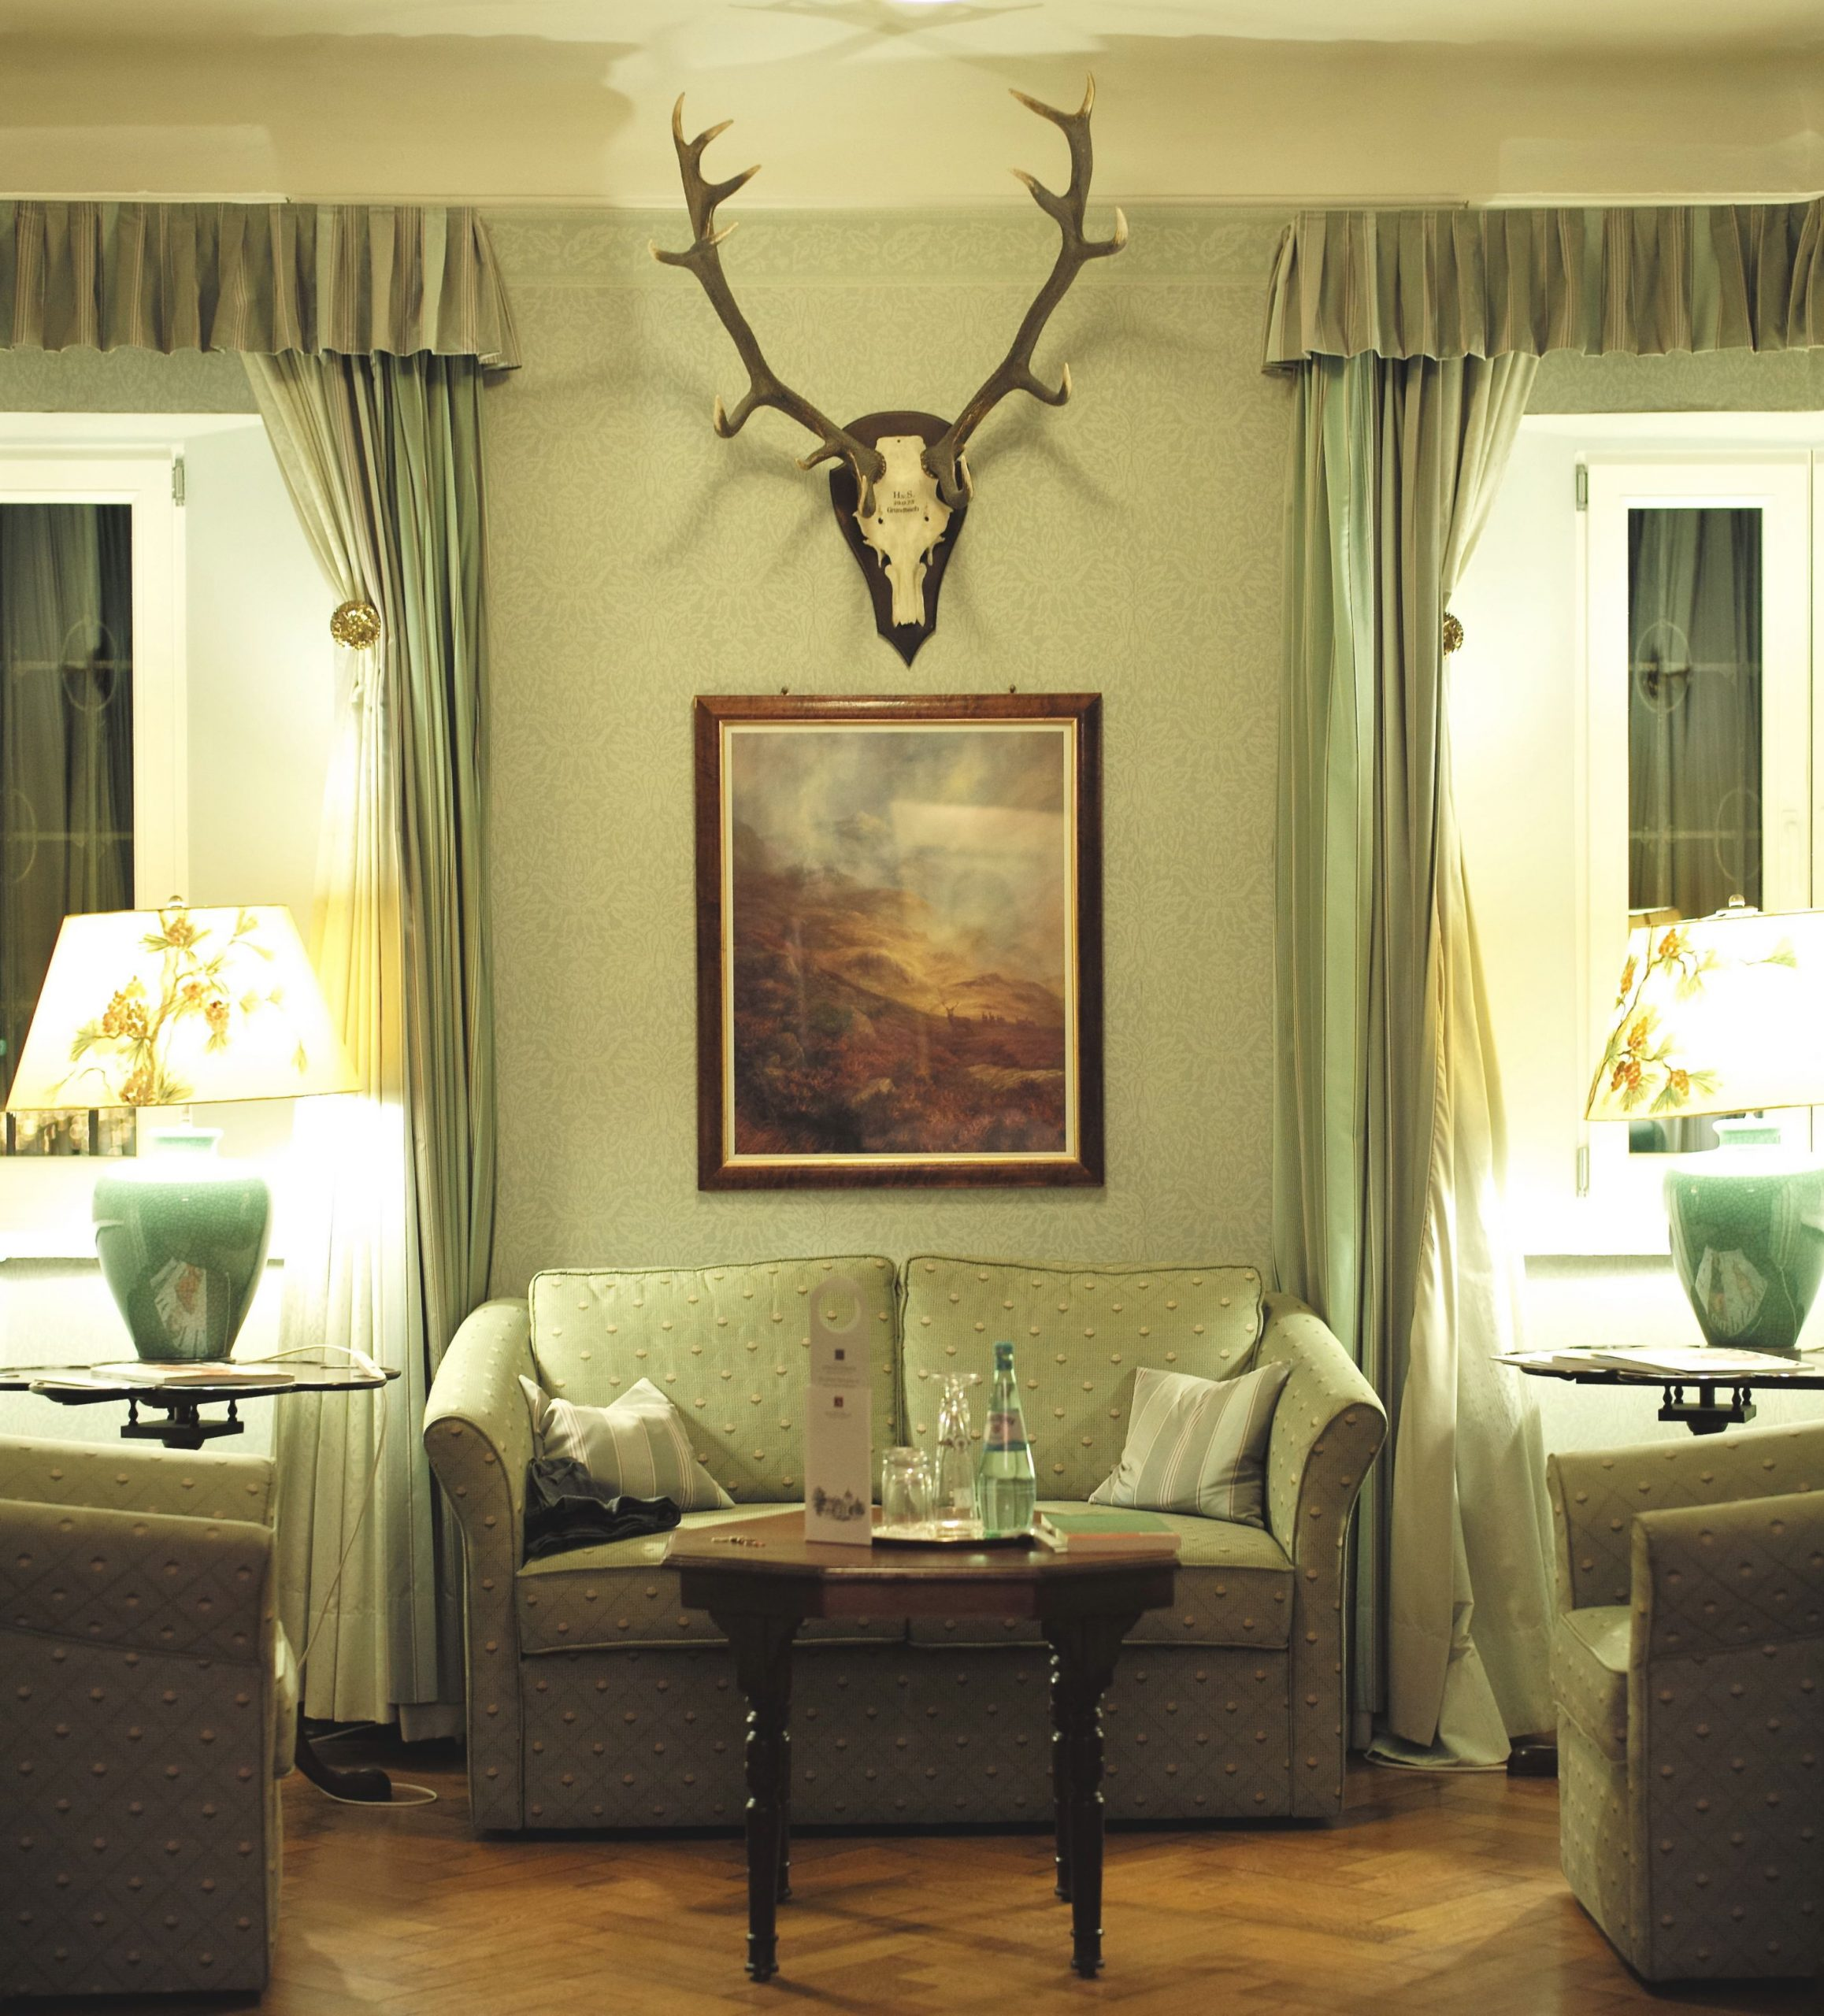 Free Images : Light, Architecture, Floor, Home, Wall, Travel intended for Hunting Decor For Living Room